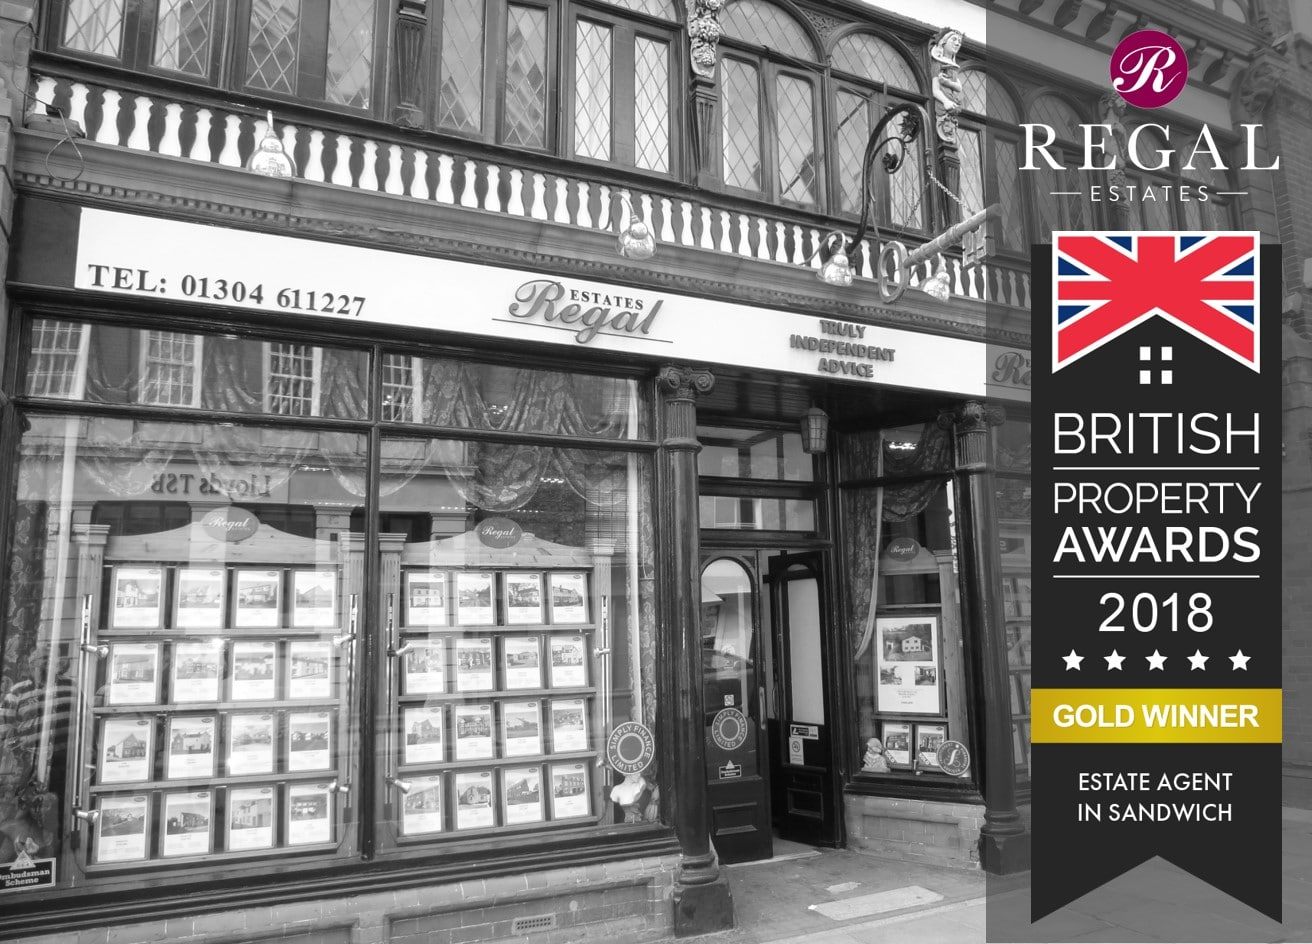 Sandwich Office Wins 'British Property Awards' 2nd Year Running!